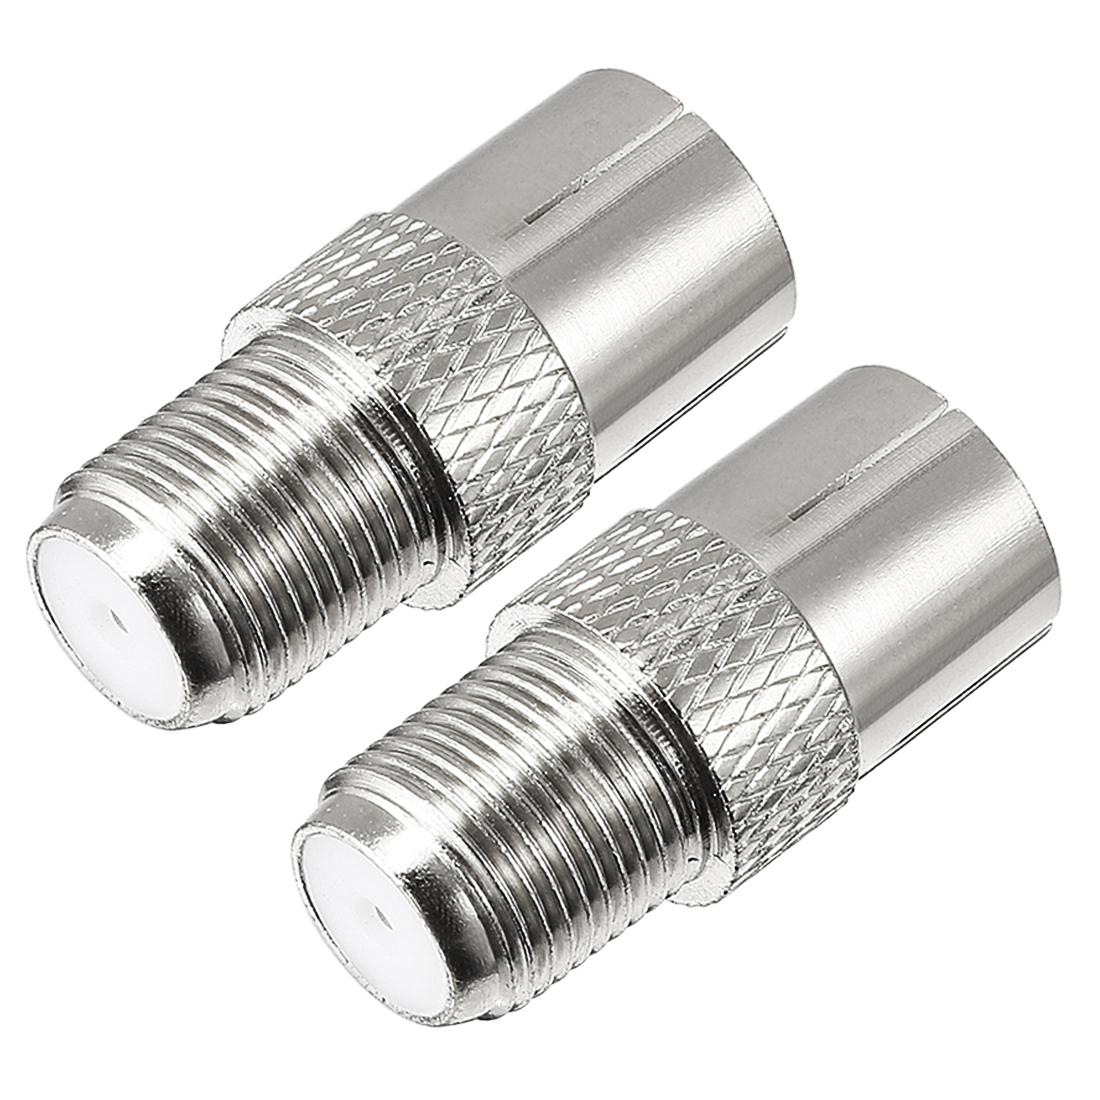 2 Pcs Silver Tone BSP F Female to PAL Female Jack RF Coaxial Adapter Connector